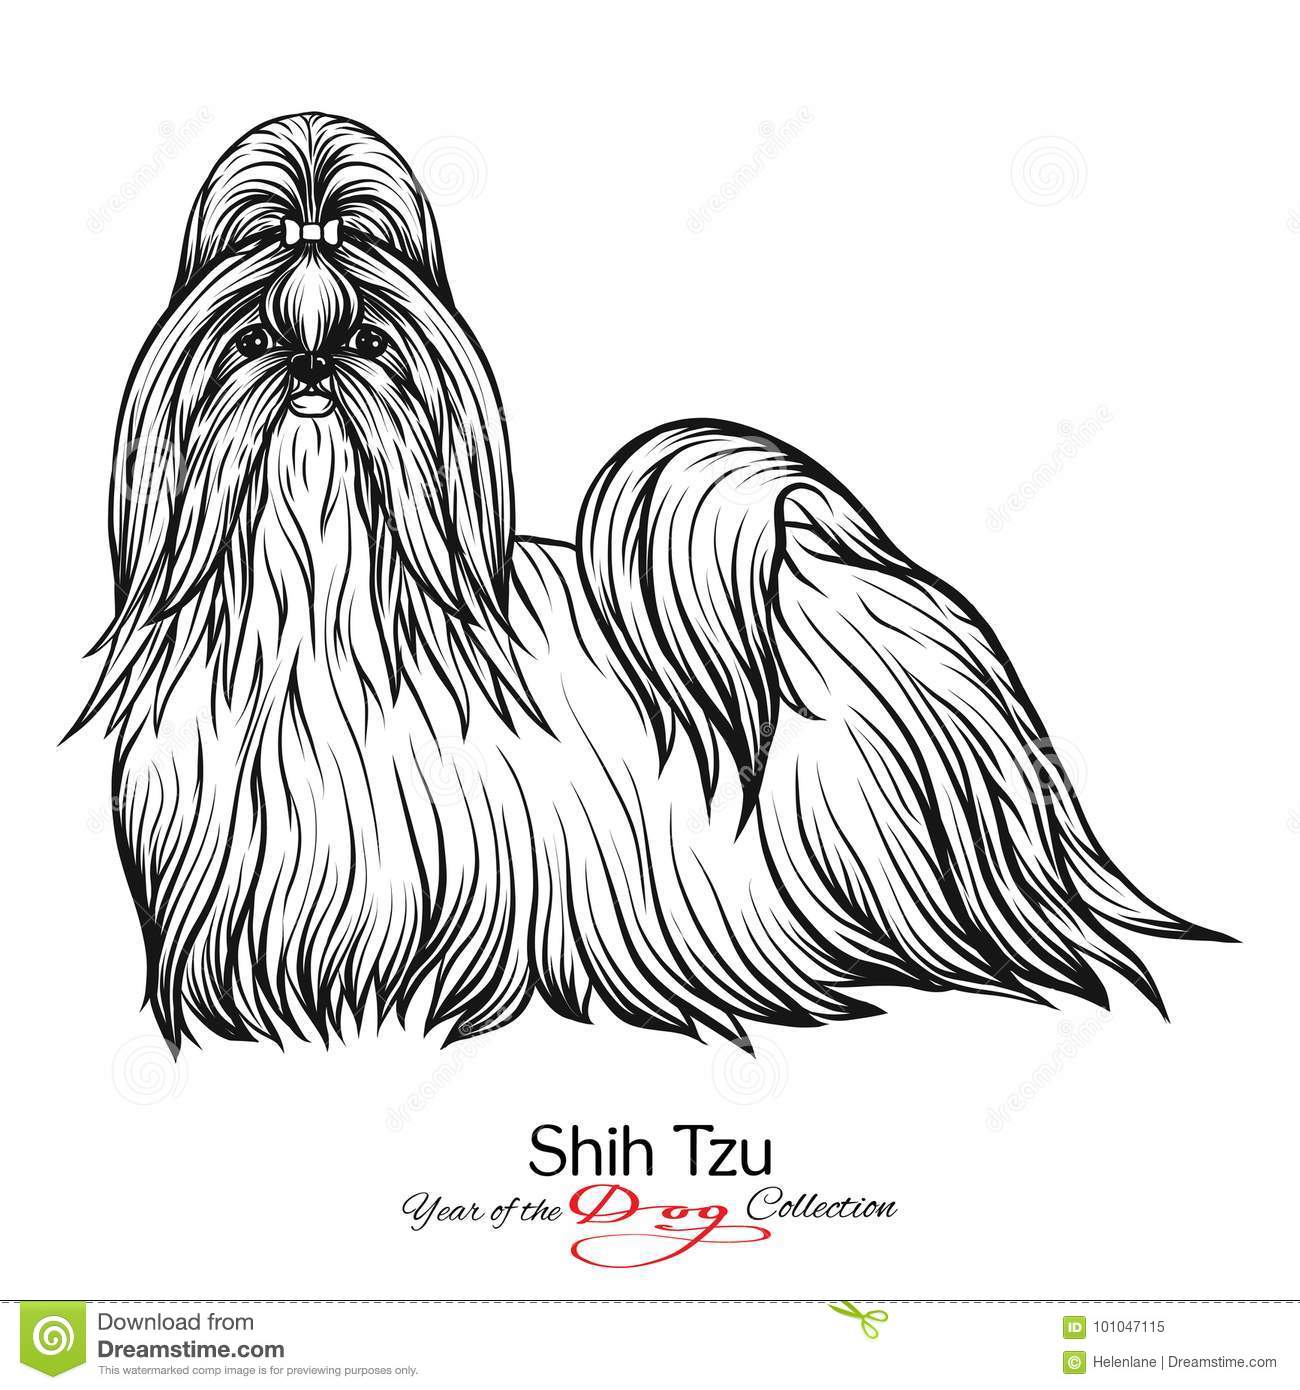 Shih Tzu Black And White Graphic Drawing Of A Dog Stock